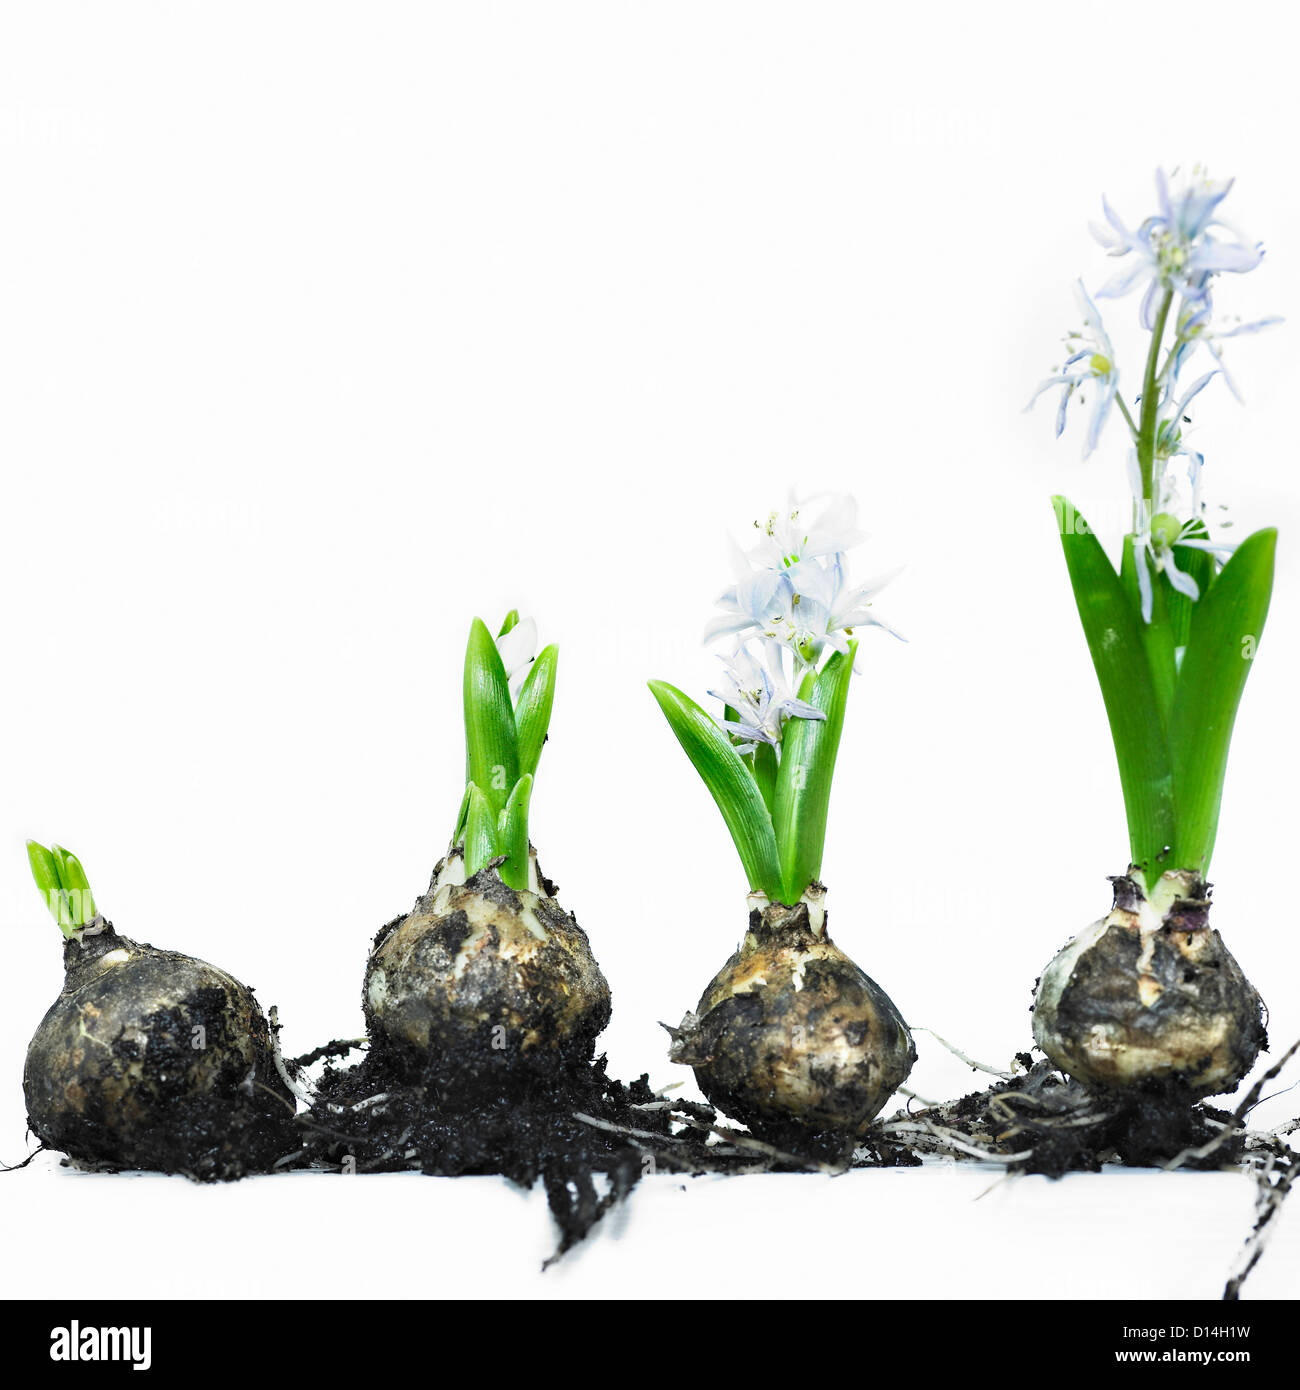 Stages Of Bulb Growth To Flower Stock Photo Royalty Free